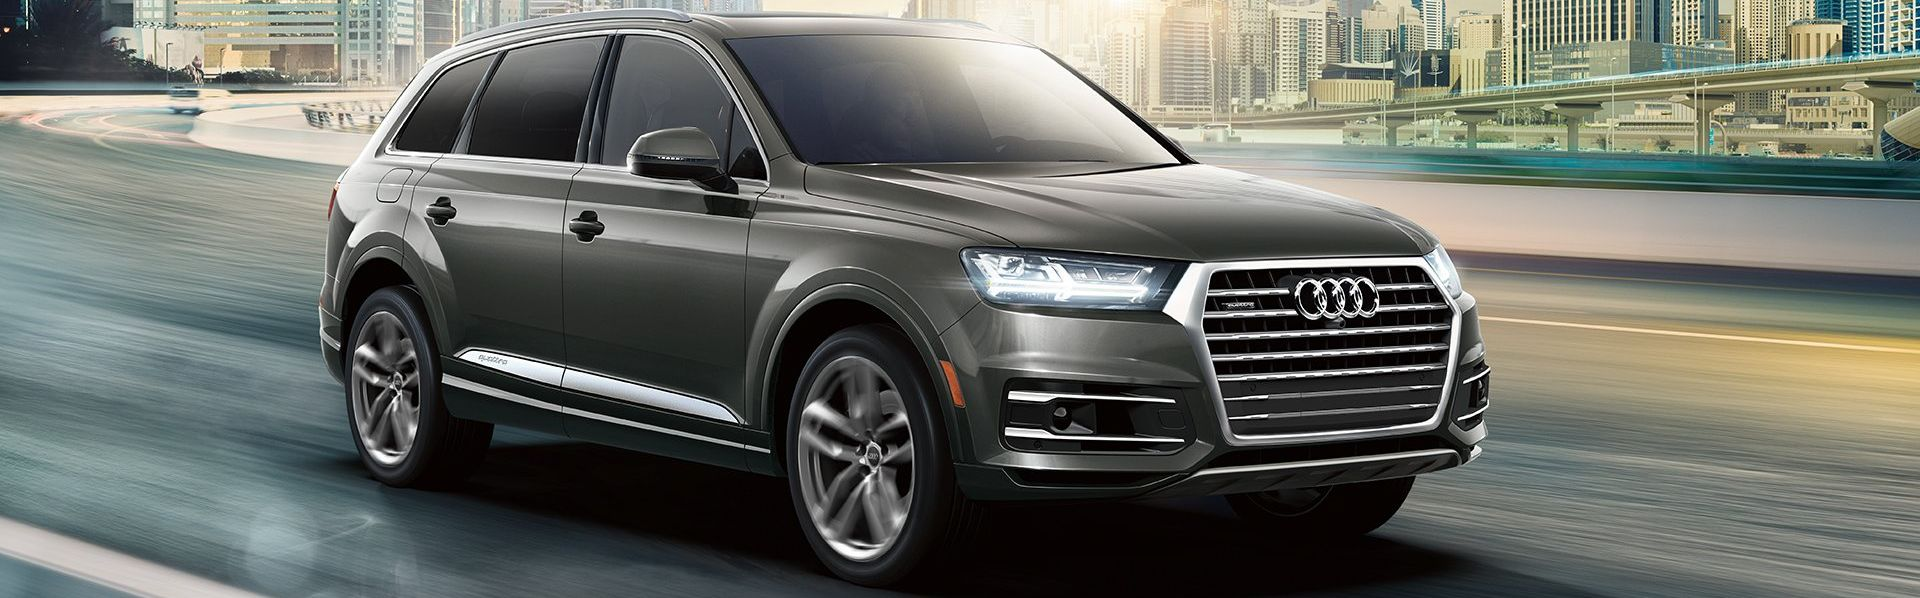 2018 Audi Q7 For Sale Near Massapequa Ny Legend Auto Group Bruno Valet Plus Wiring Diagram